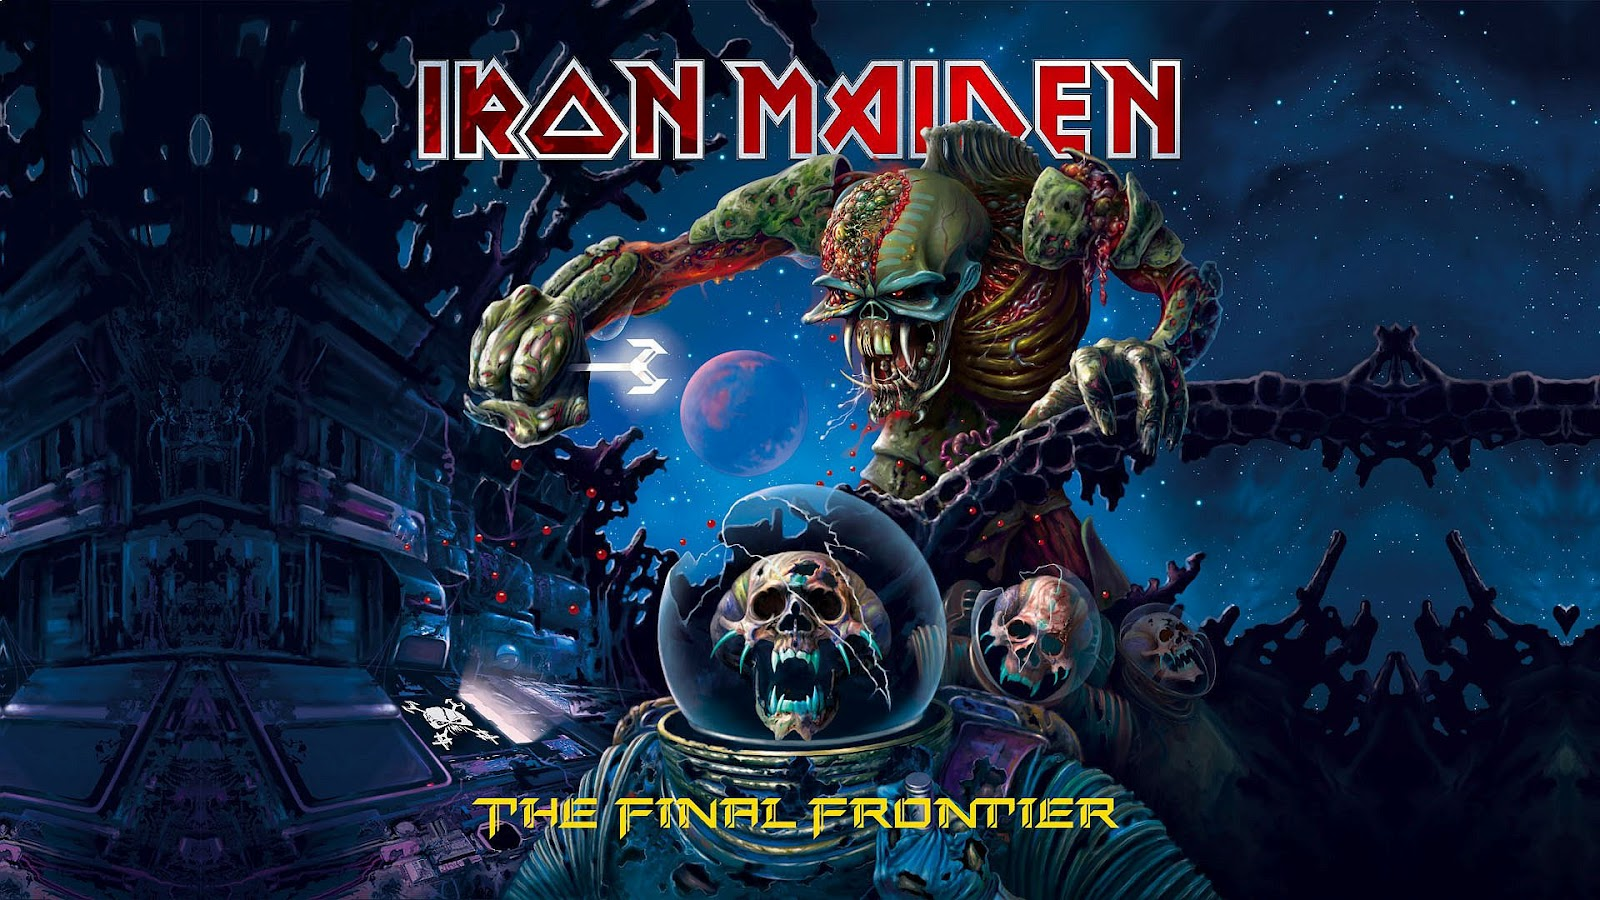 Iron maiden Wallpaper the final frontier